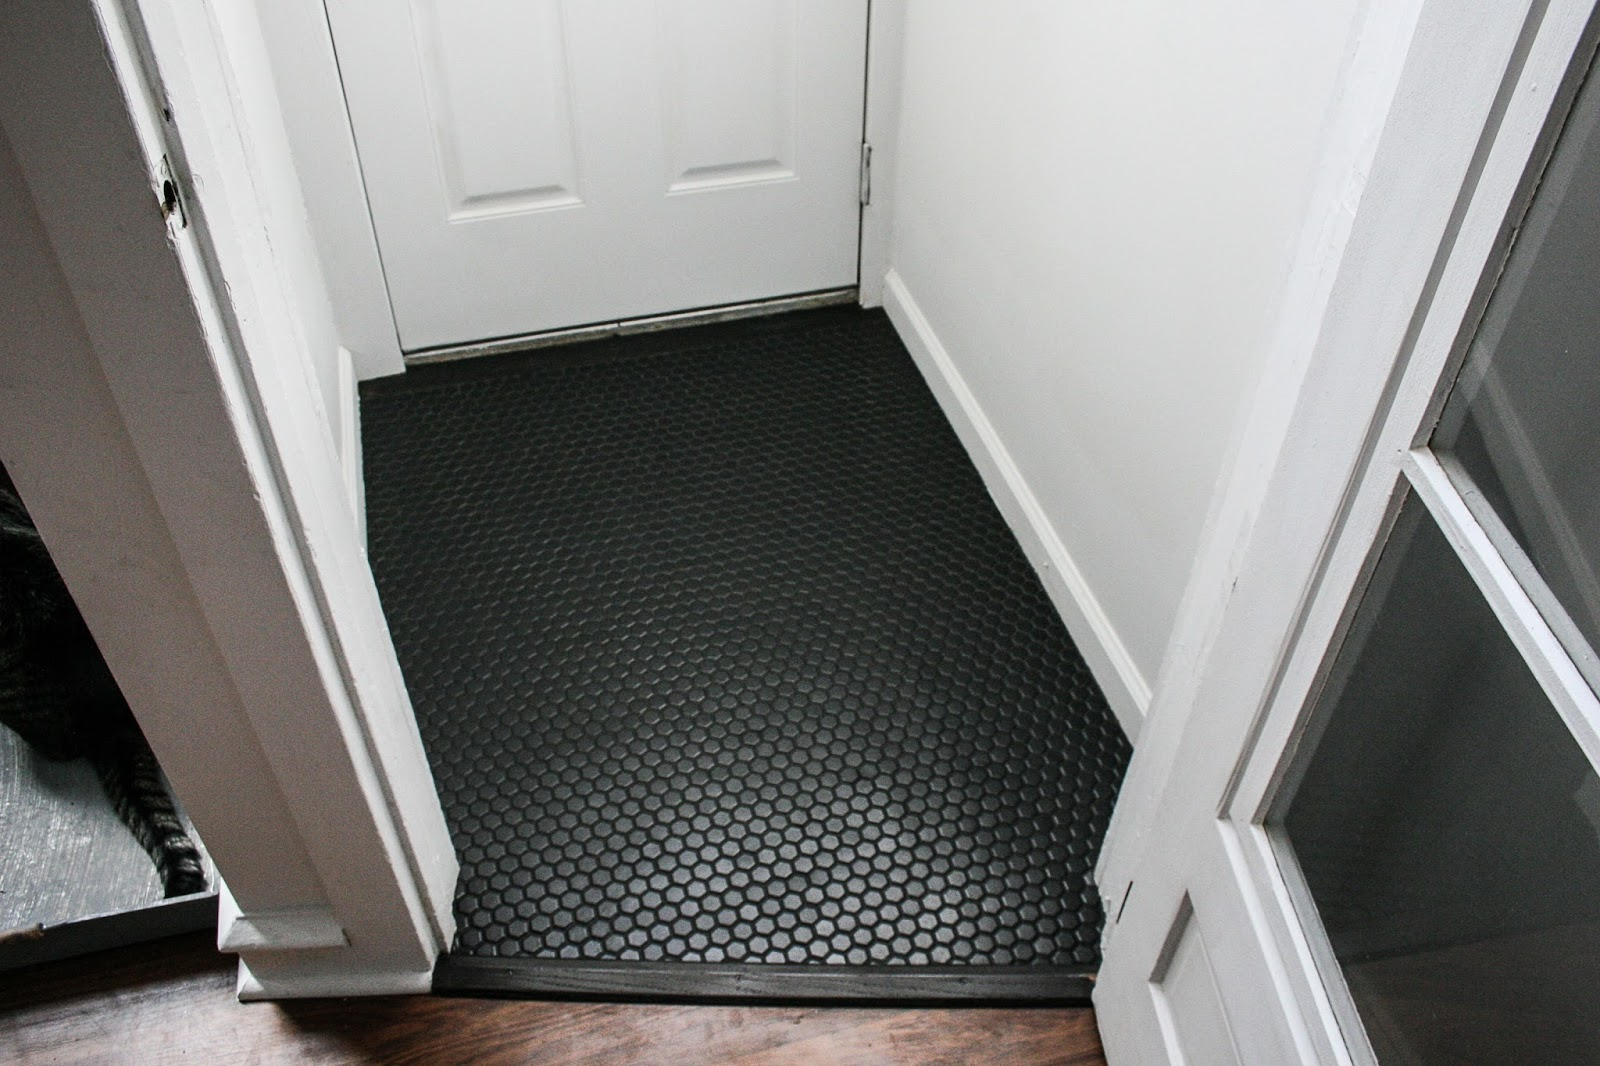 Diy Project How To Tile A Vestibule Floor Andchristina